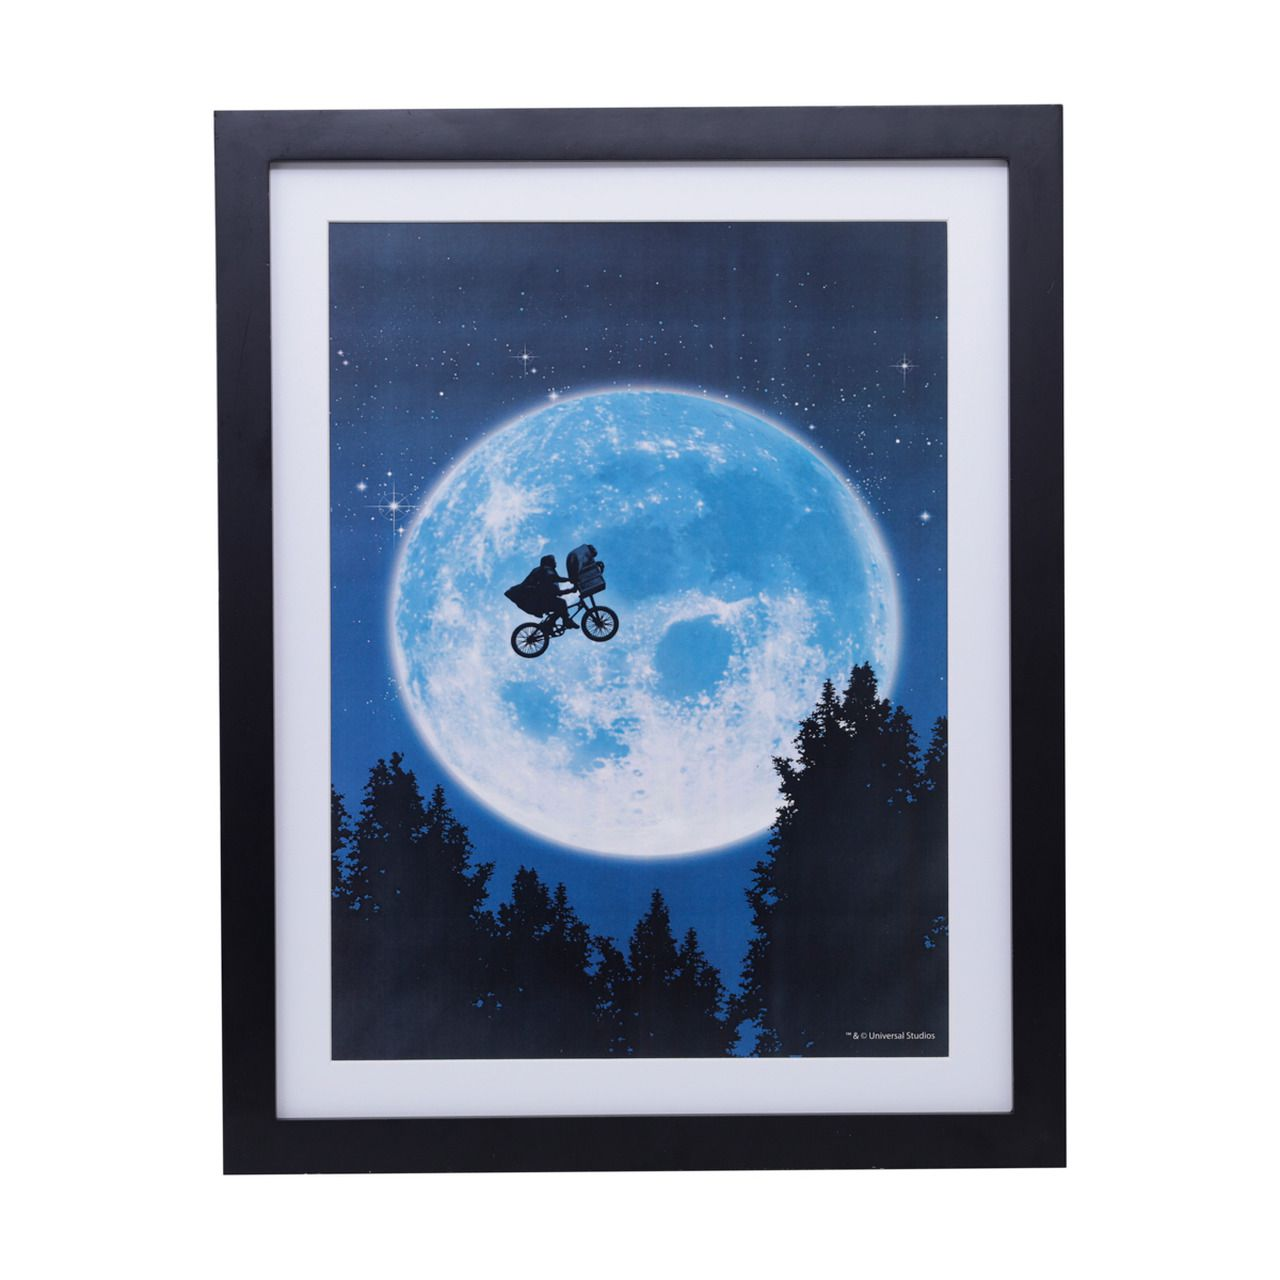 Quadro Poster E.T. (Bike in The Moon): E.T.: O Extraterrestre - Urban